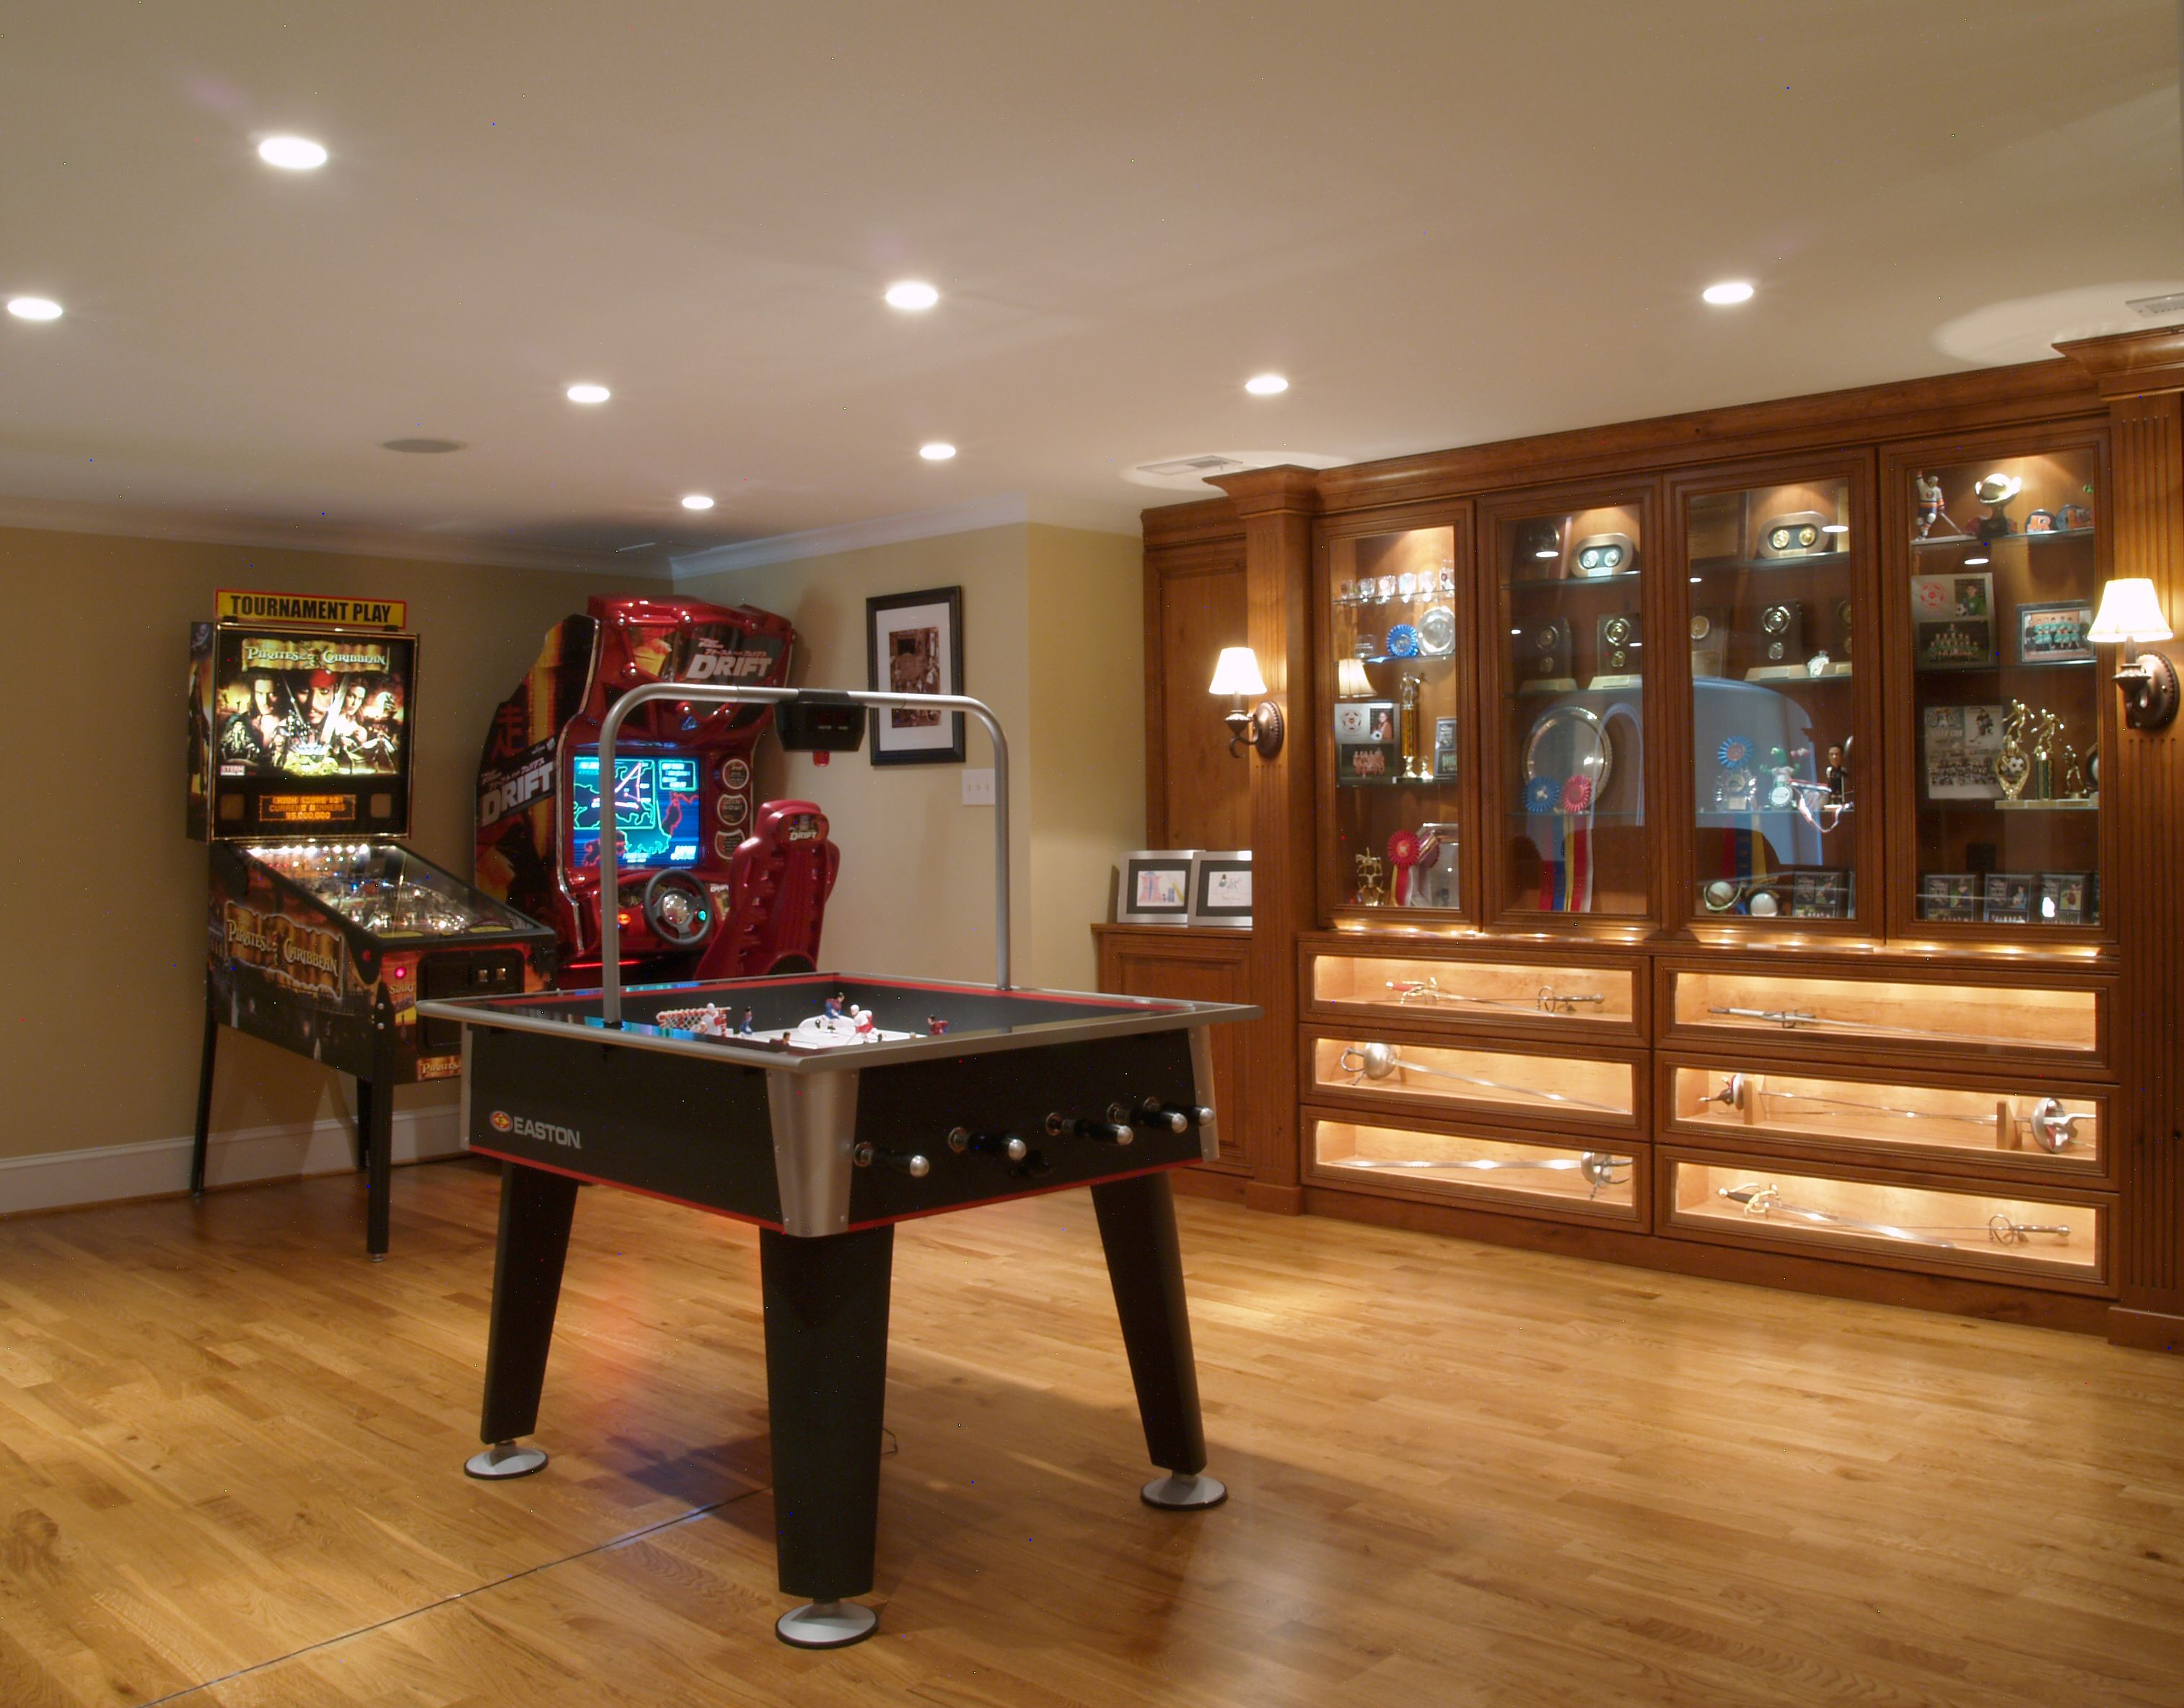 delightful Game Room in Basement amazing design